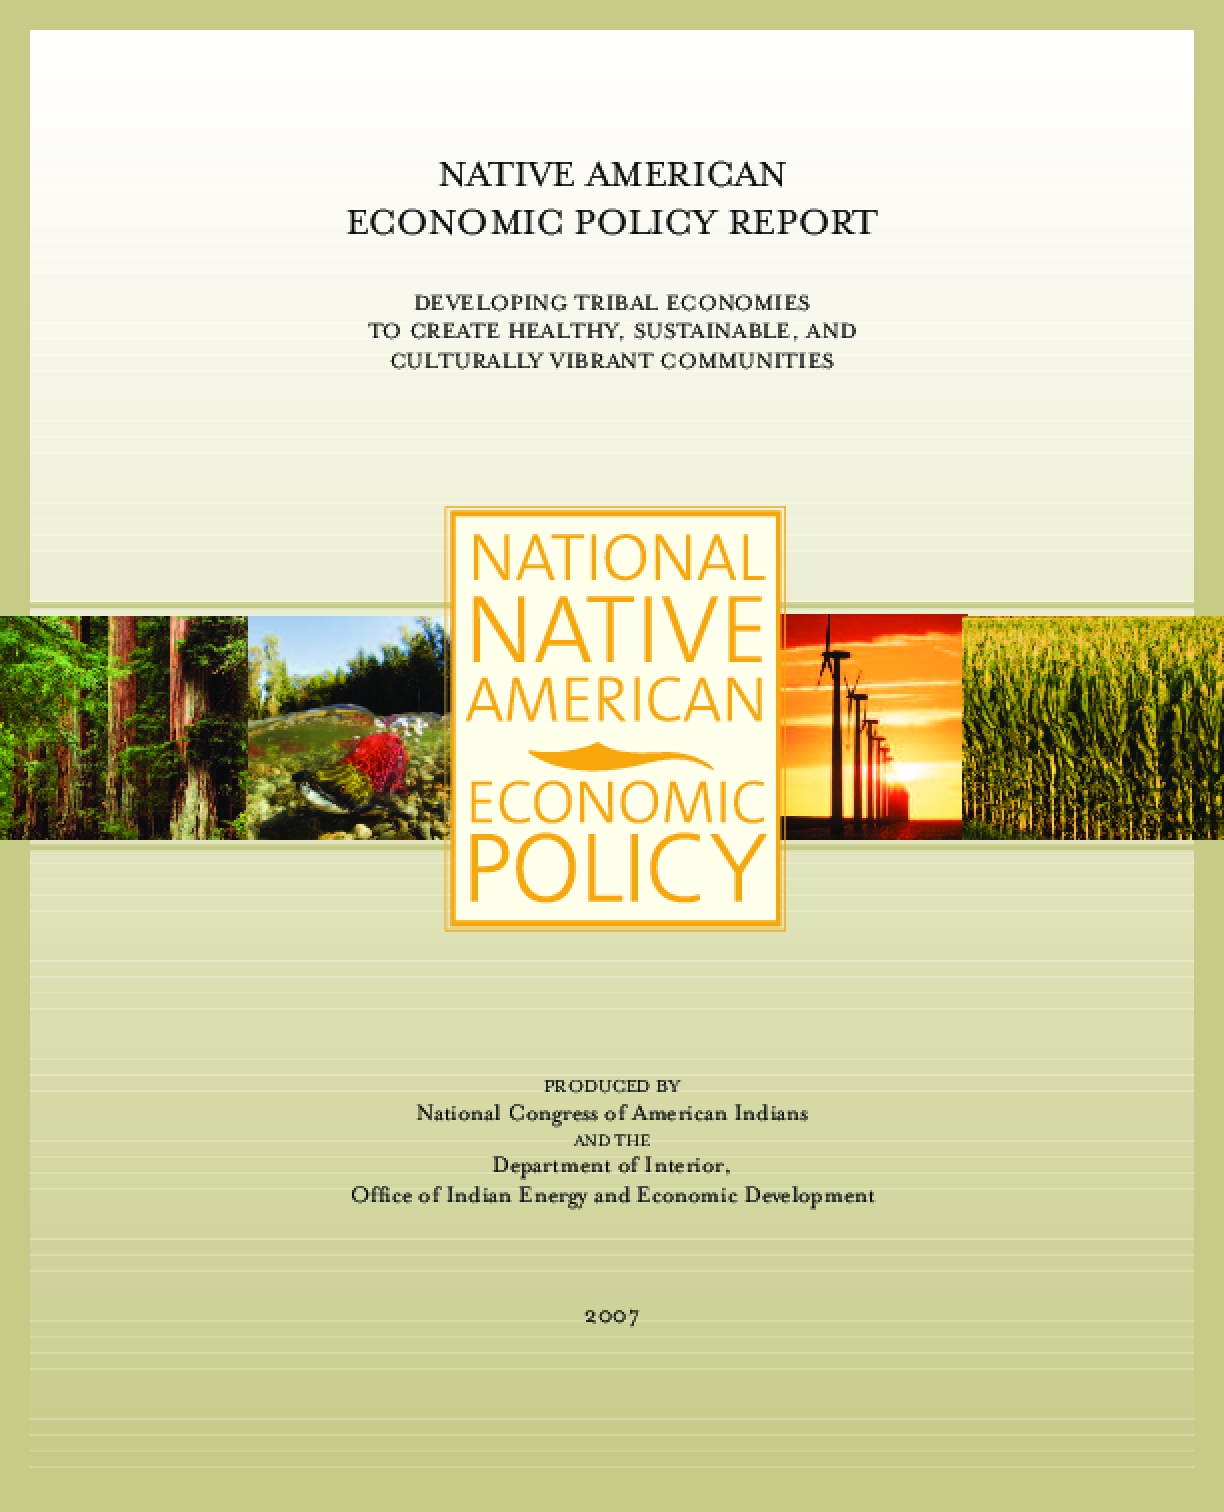 Native American Economic Policy Report: Developing Tribal Economies to Create Healthy, Sustainable, and Culturally Vibrant Communities